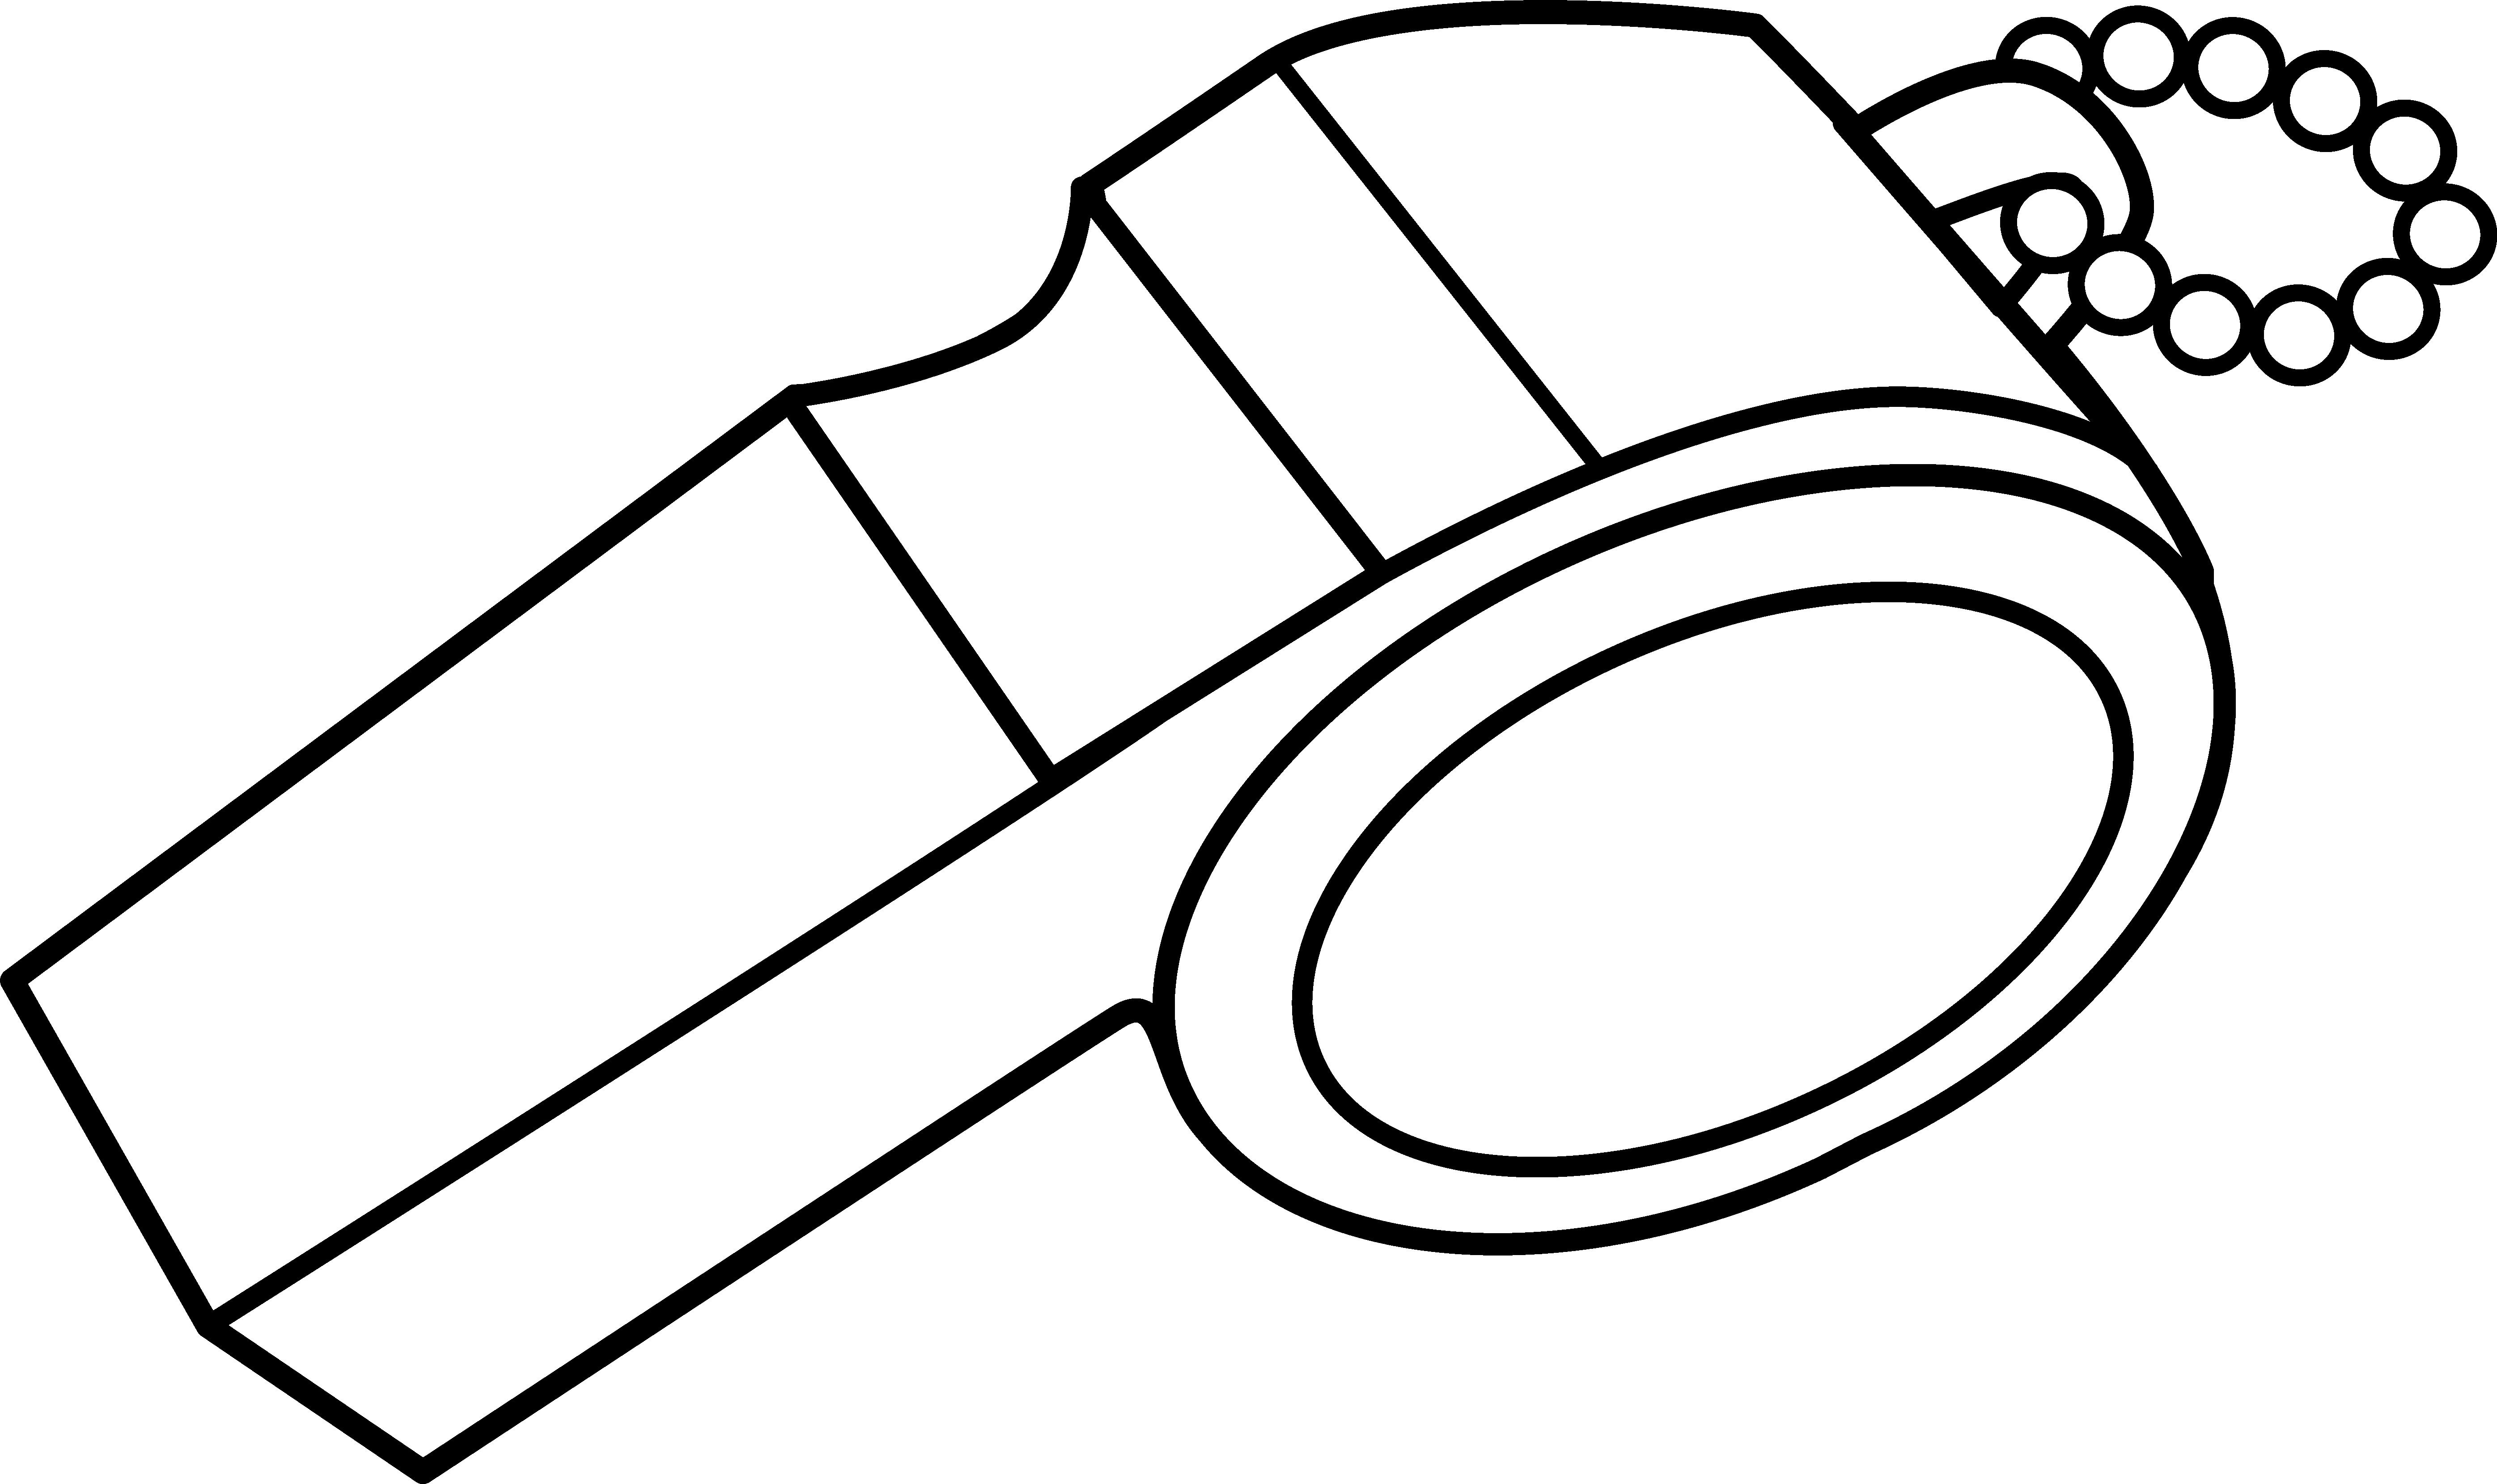 Whistle Coloring Page.